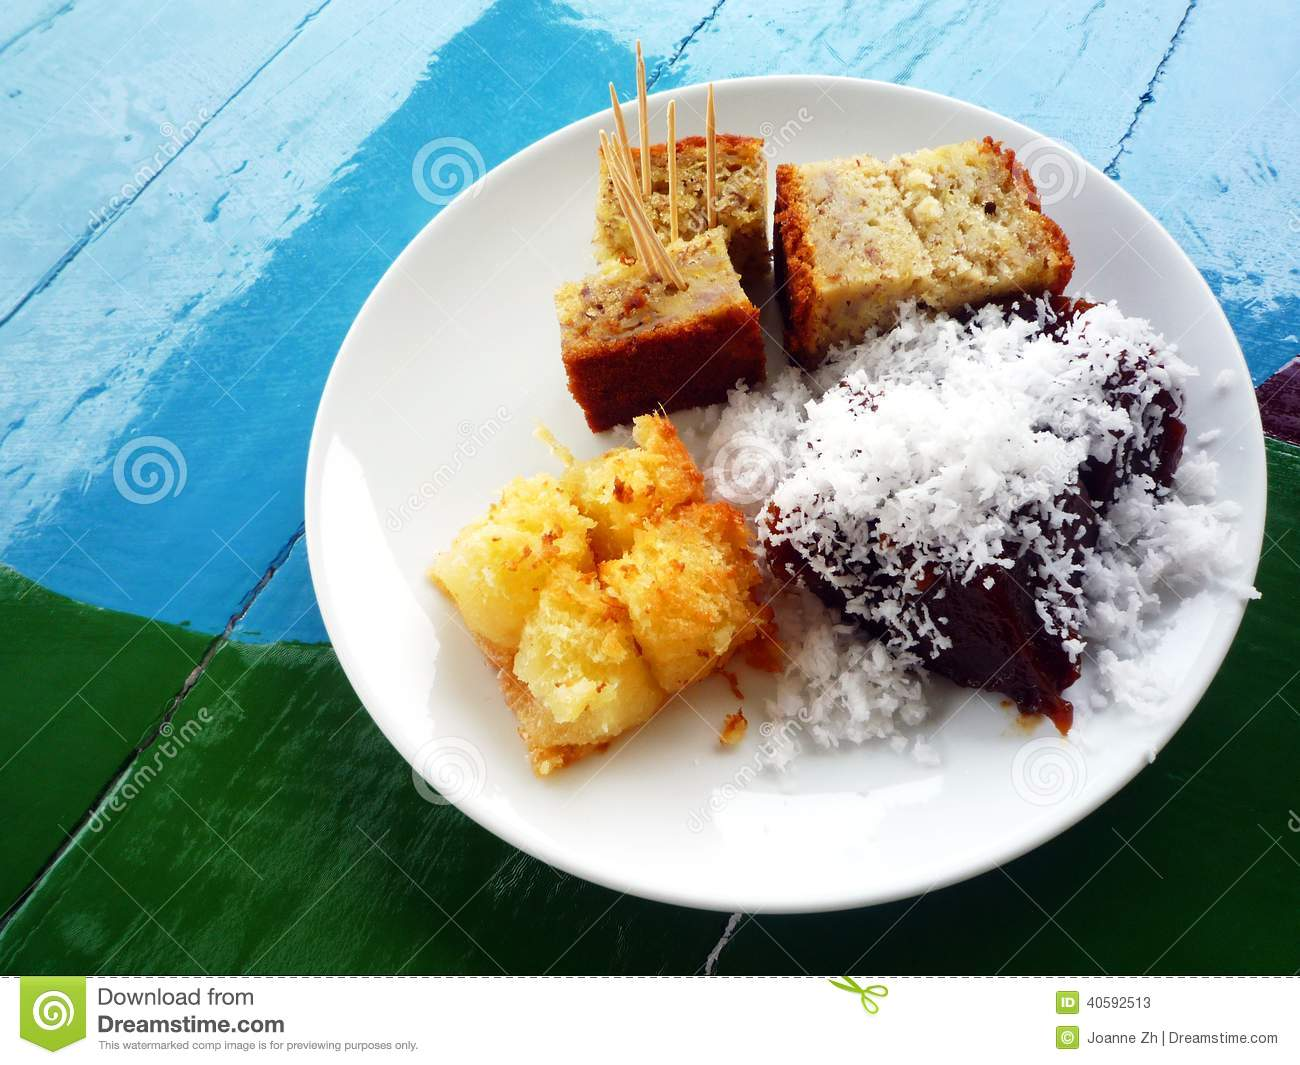 Asian food - cakes and dessert